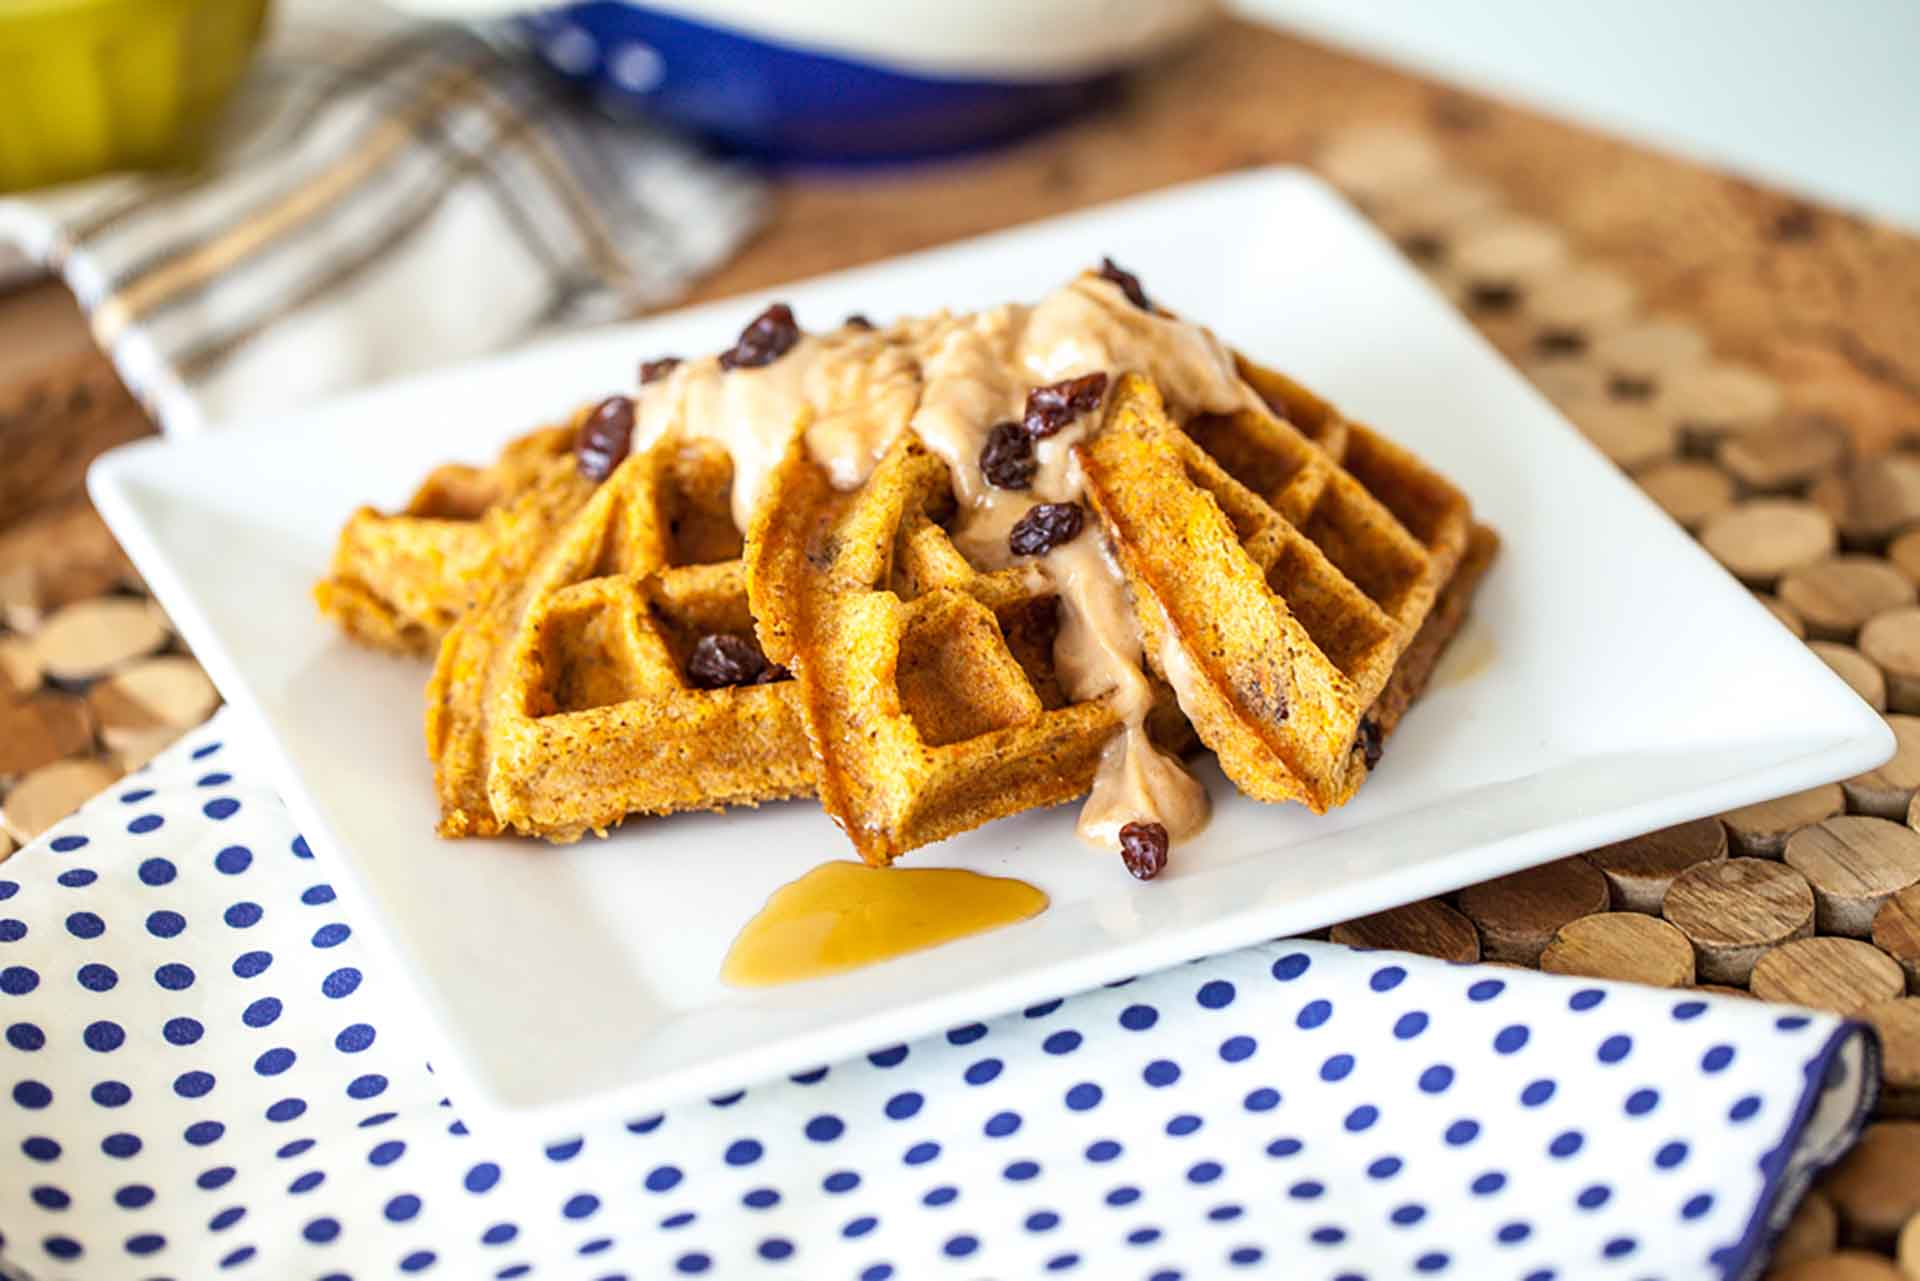 A plate of waffles sitting on a wooden table.